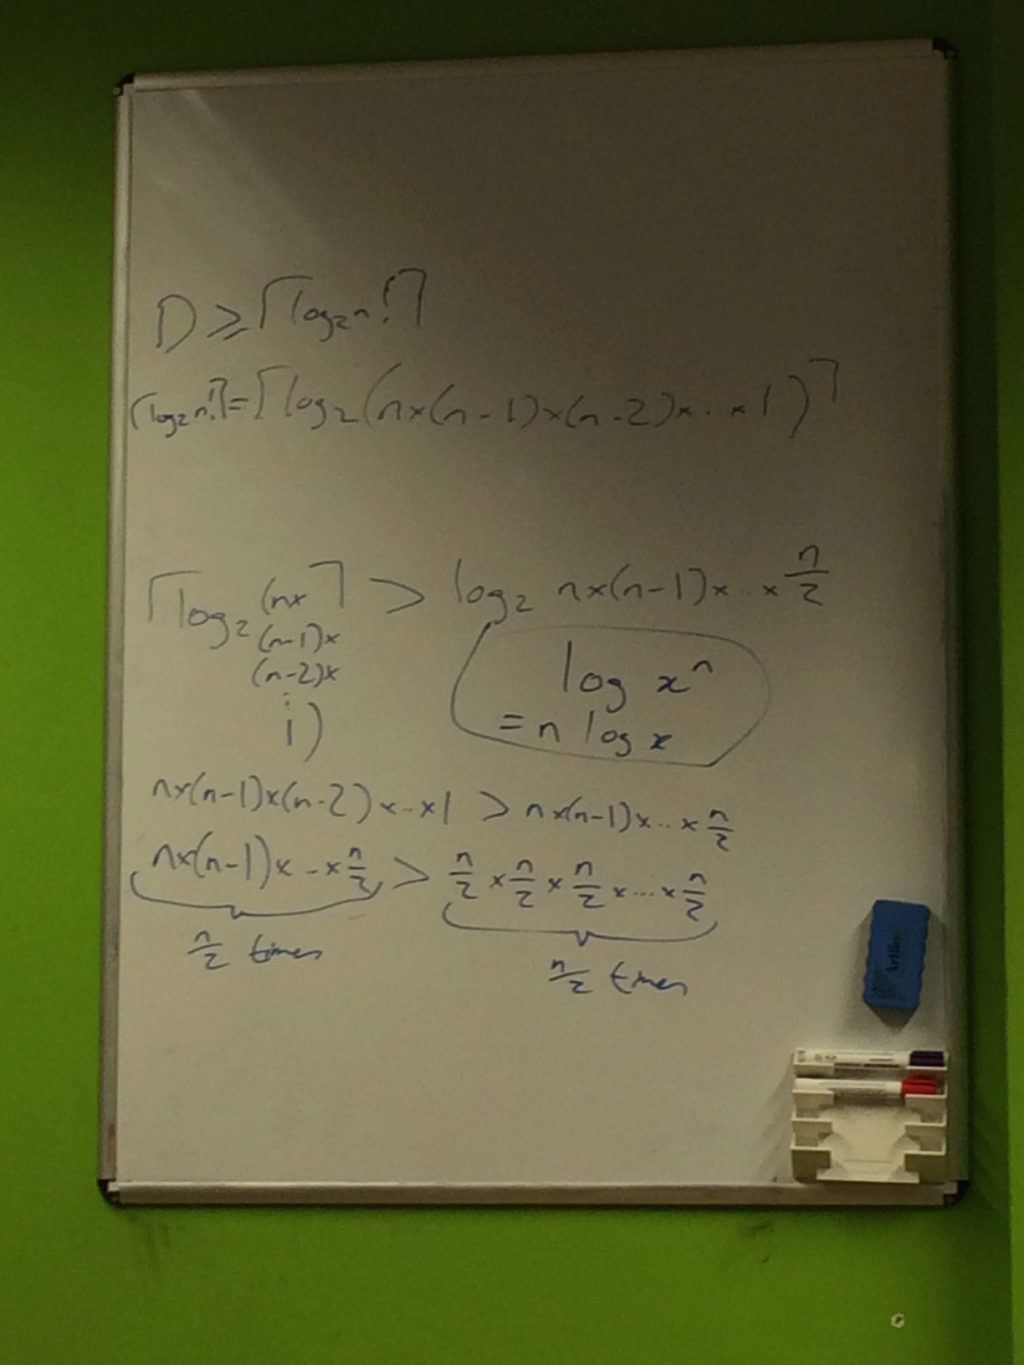 Expanding the algebra given in the book